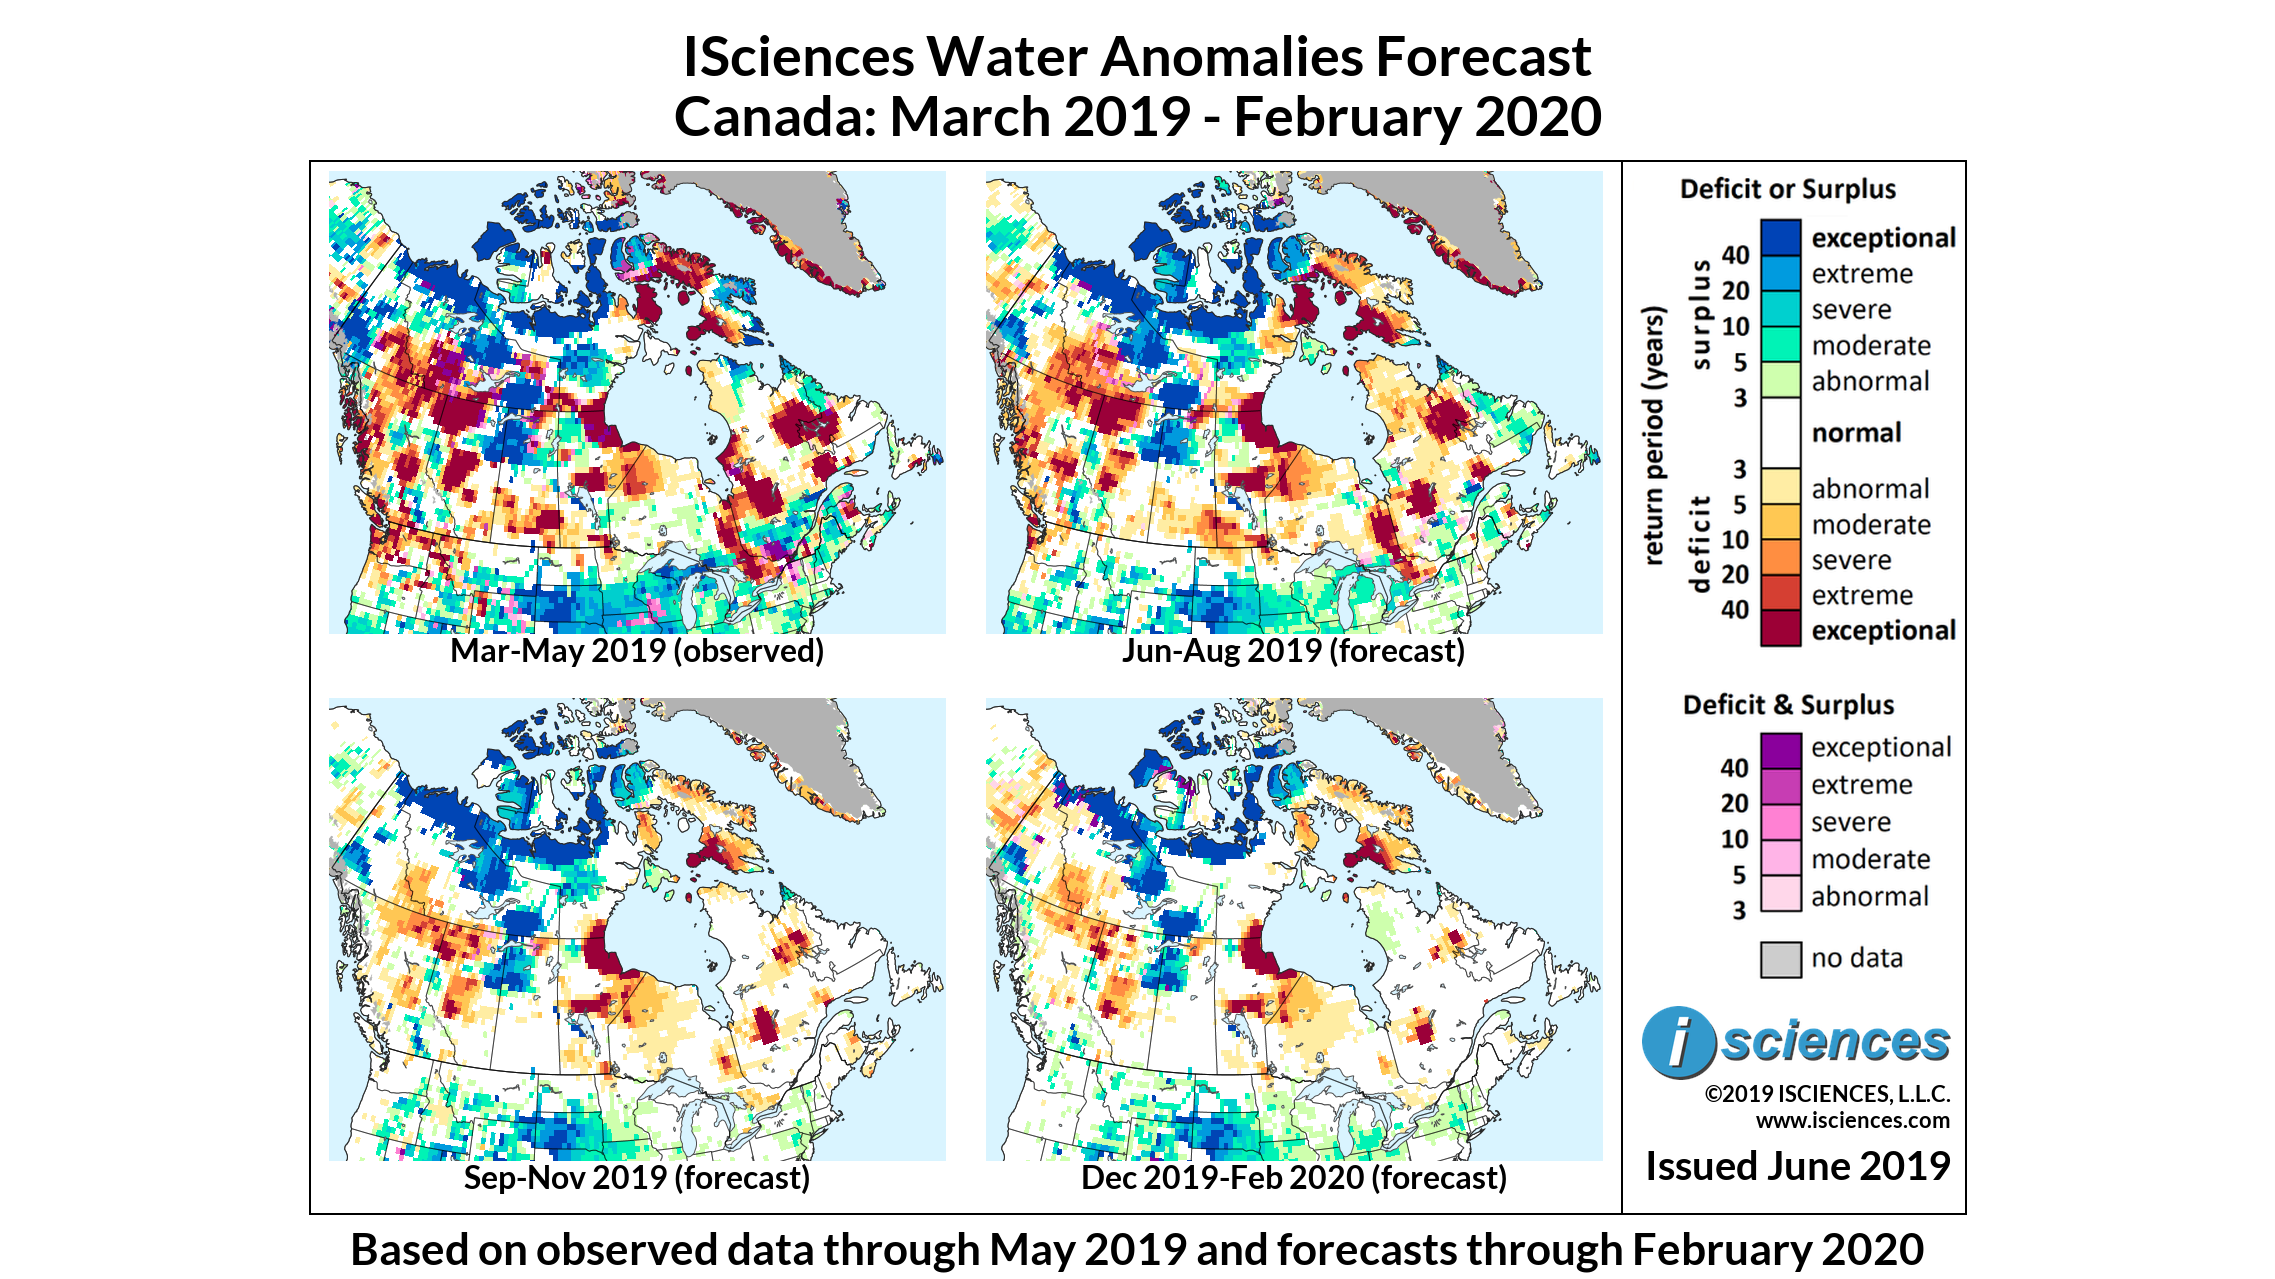 ISciences_R201905_Canada_Composite_Adjusted_201903-202002_3mo_panel.png